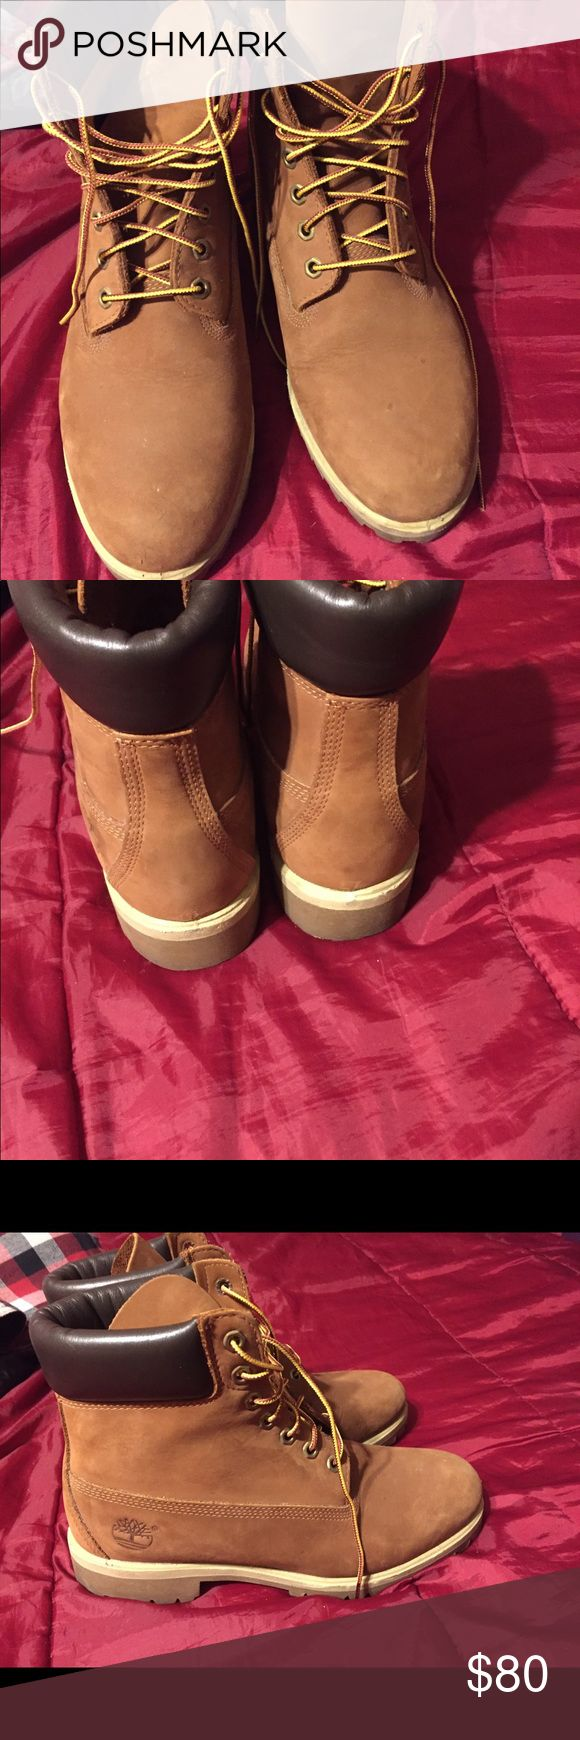 Men's Timberlands Men's Tan Timberlands!! Size 10 1/2 Great for winter ❄️ or work! Slightly dusty but nothing wrong with them. Timberland Shoes Winter & Rain Boots